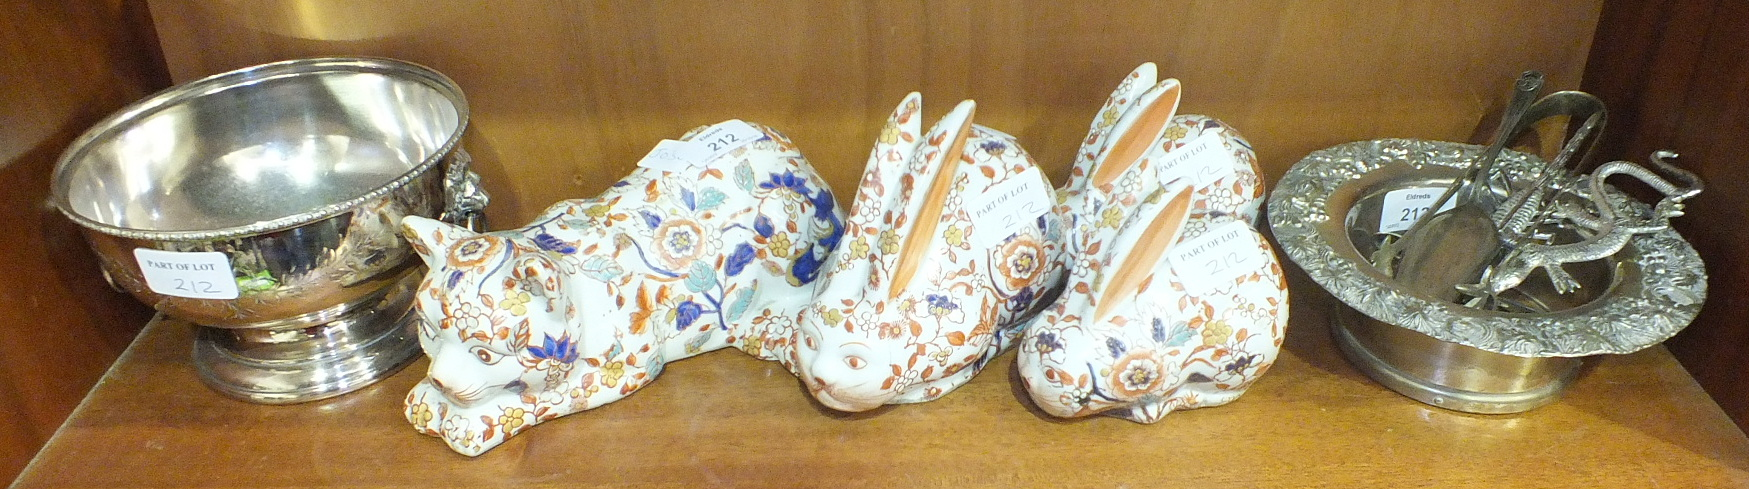 Lot 212 - A reproduction Chinese Imari decorated cat, three similar rabbits and other items.